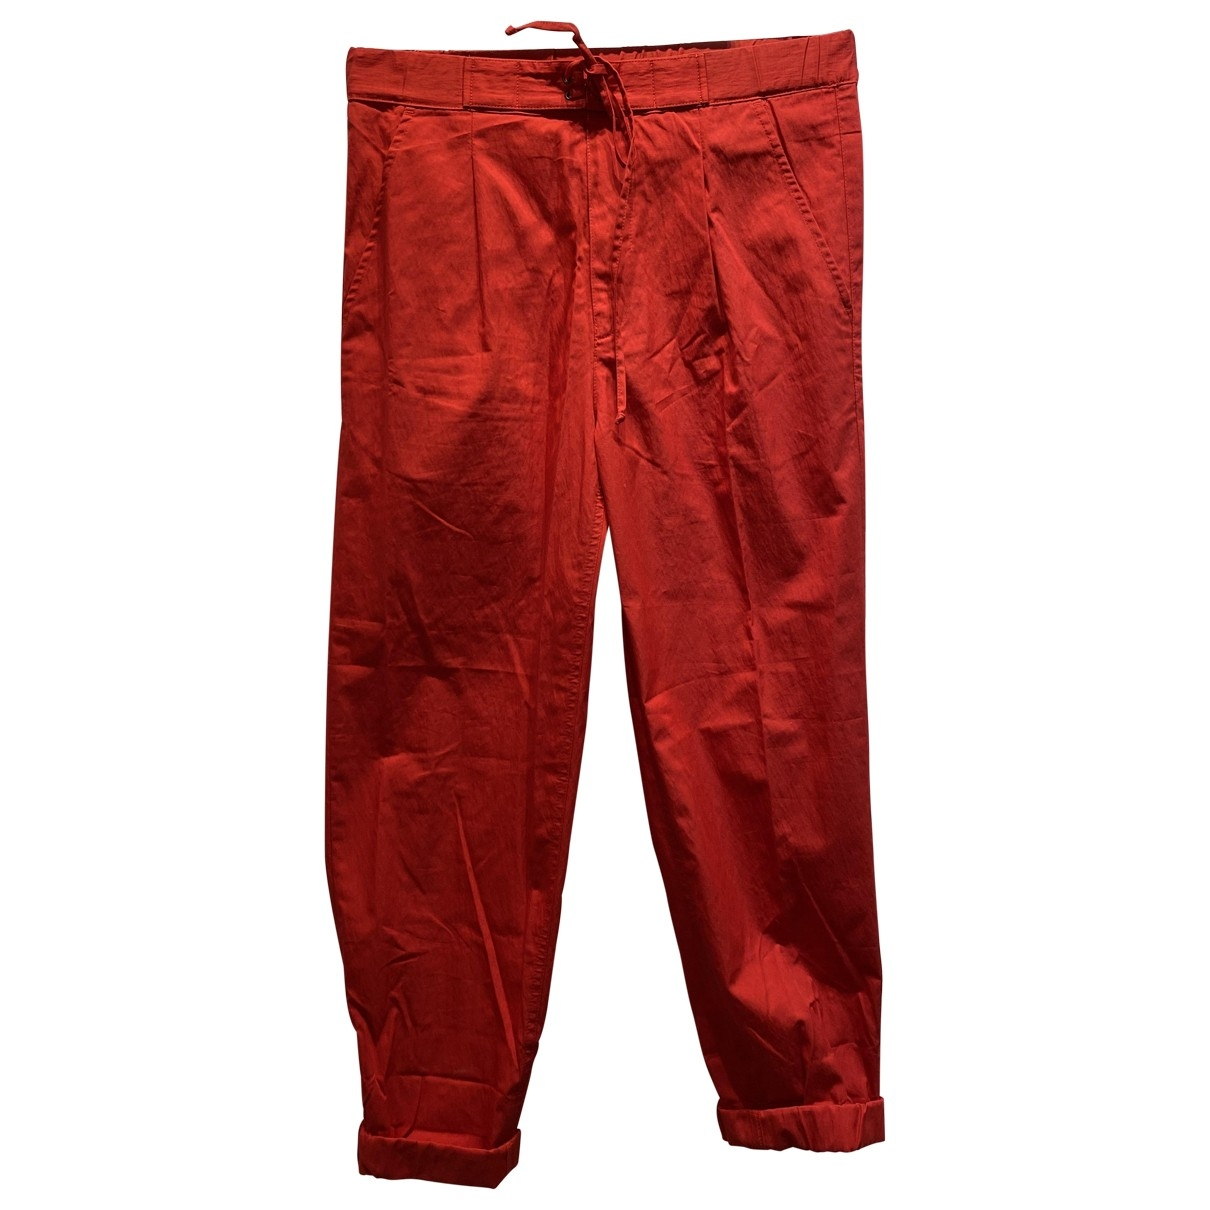 Bottega Veneta \N Red Cotton Trousers for Men 46 IT